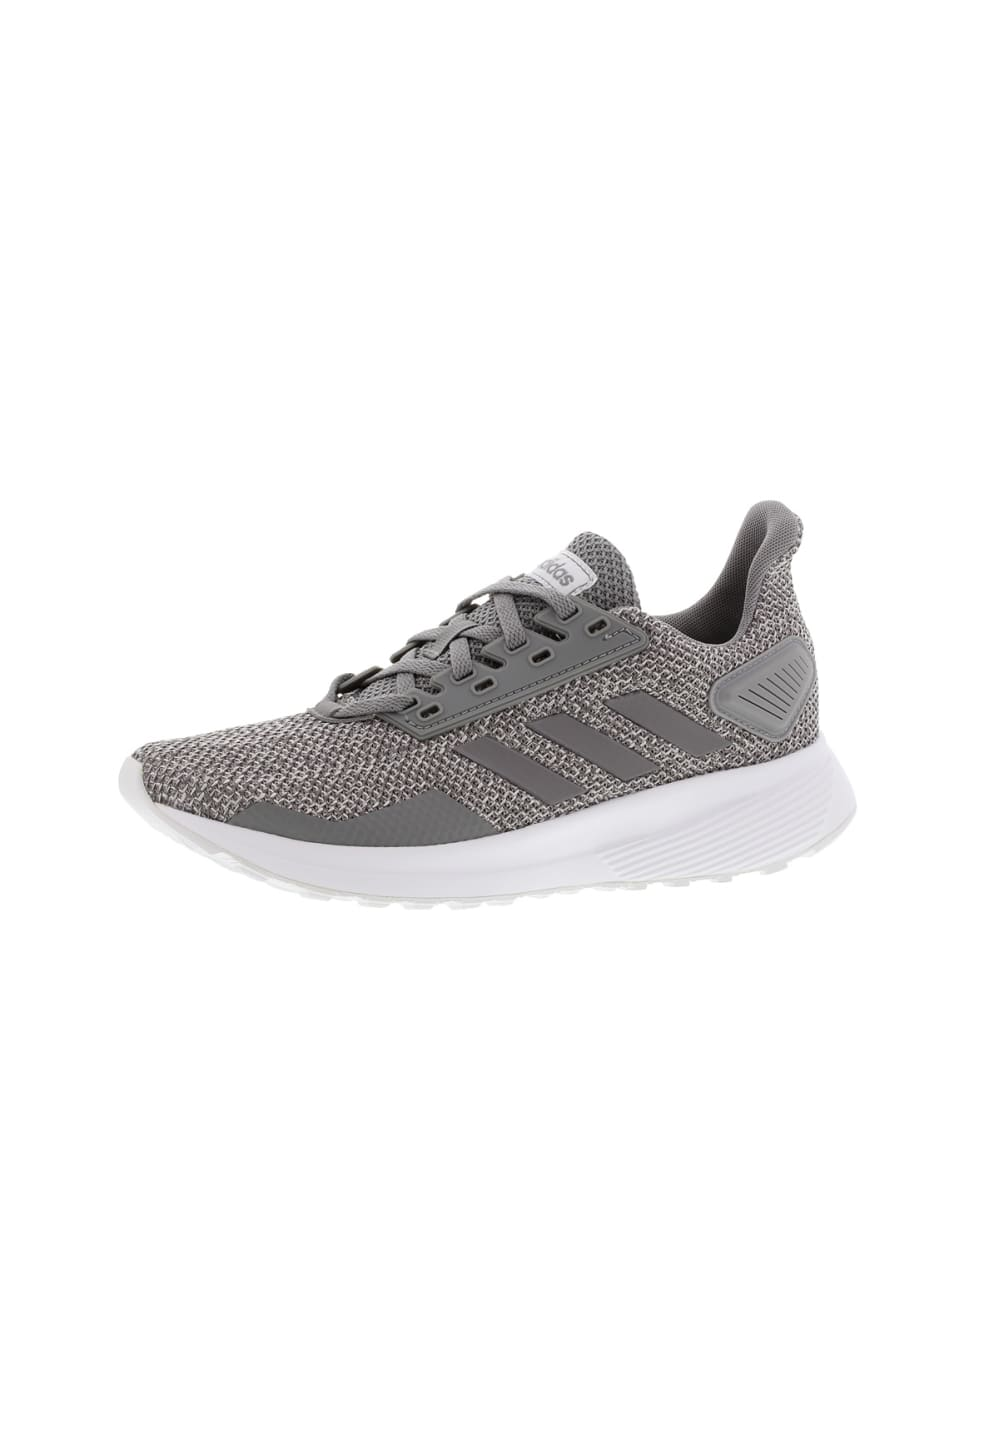 e26d2918dfaeb adidas Duramo 9 Kids - Running shoes - Grey